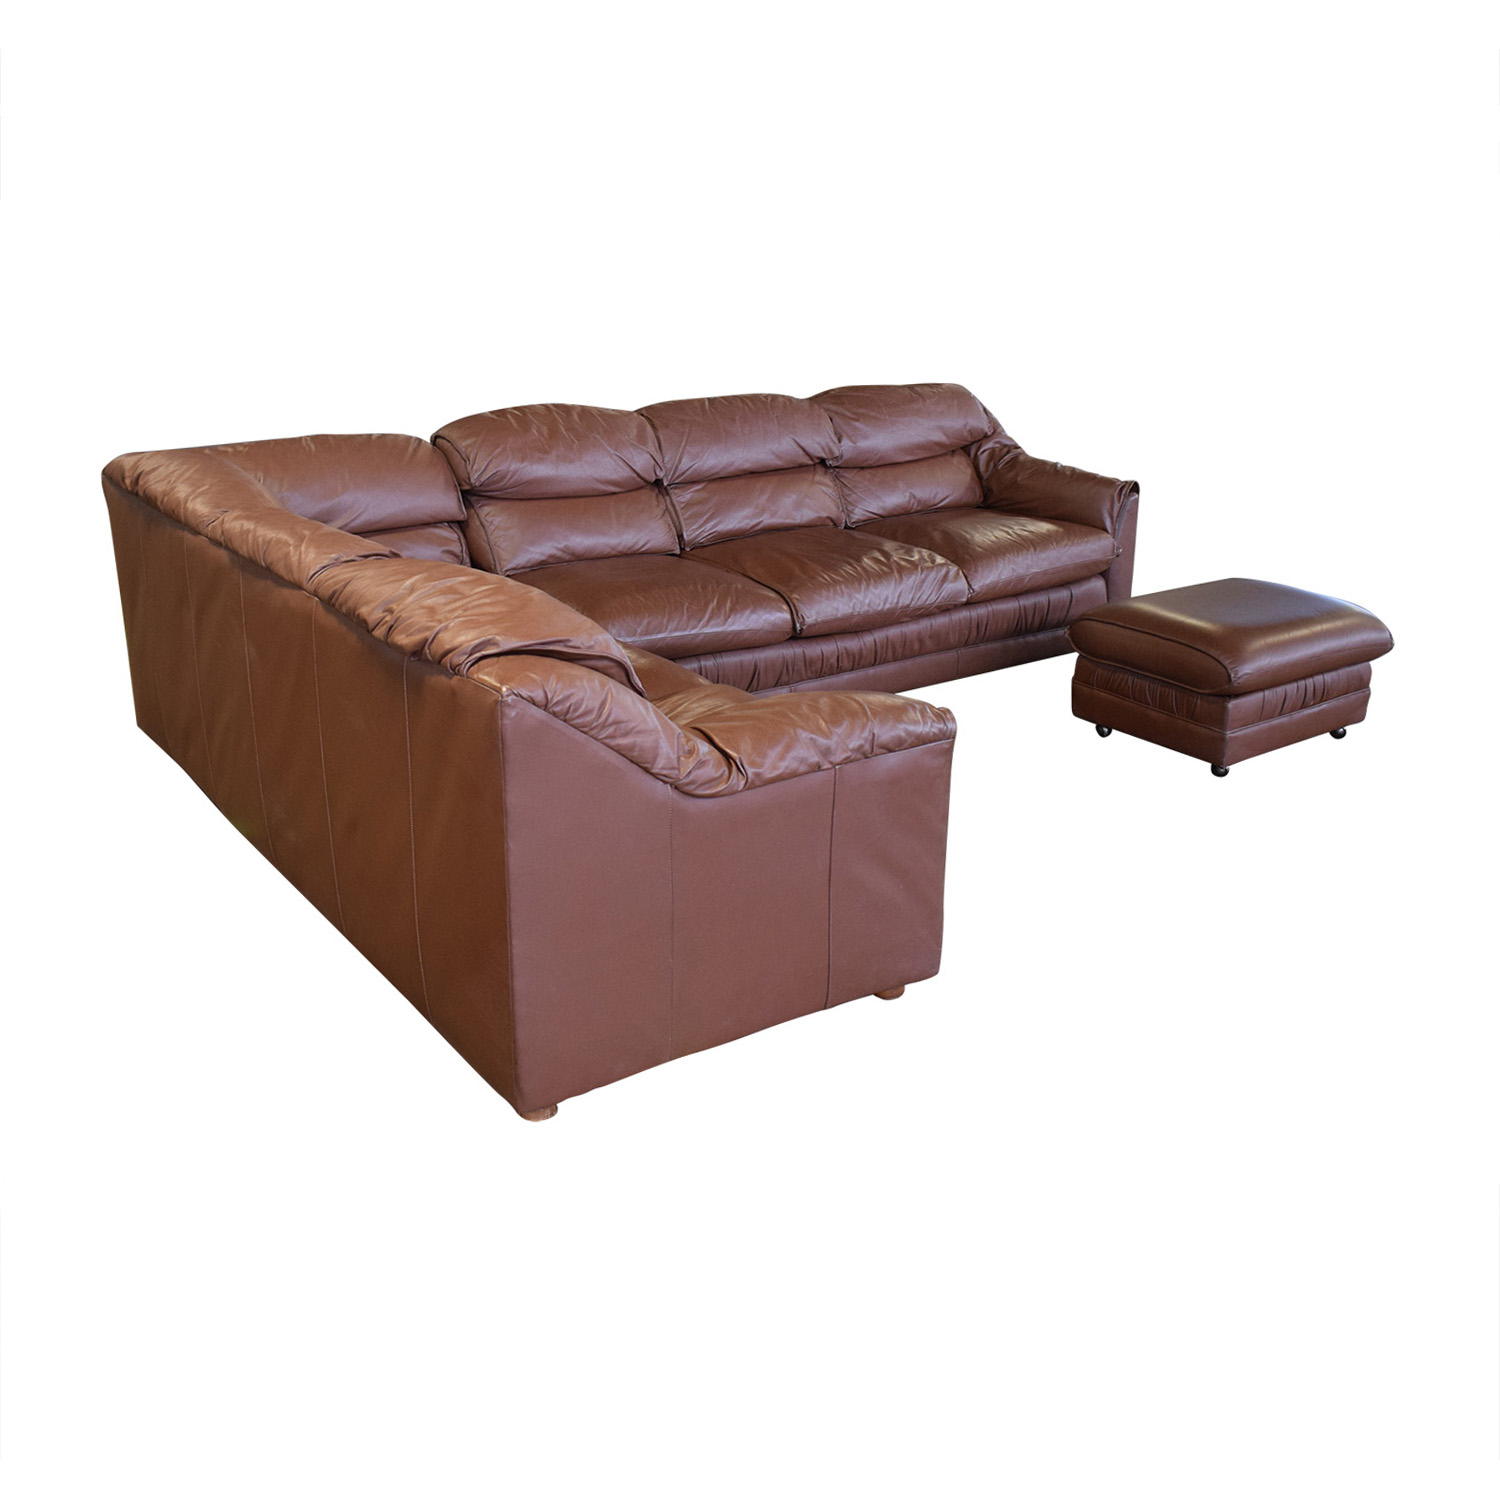 shop Emerson Leather Sectional Sofa and Ottoman Emerson Leather